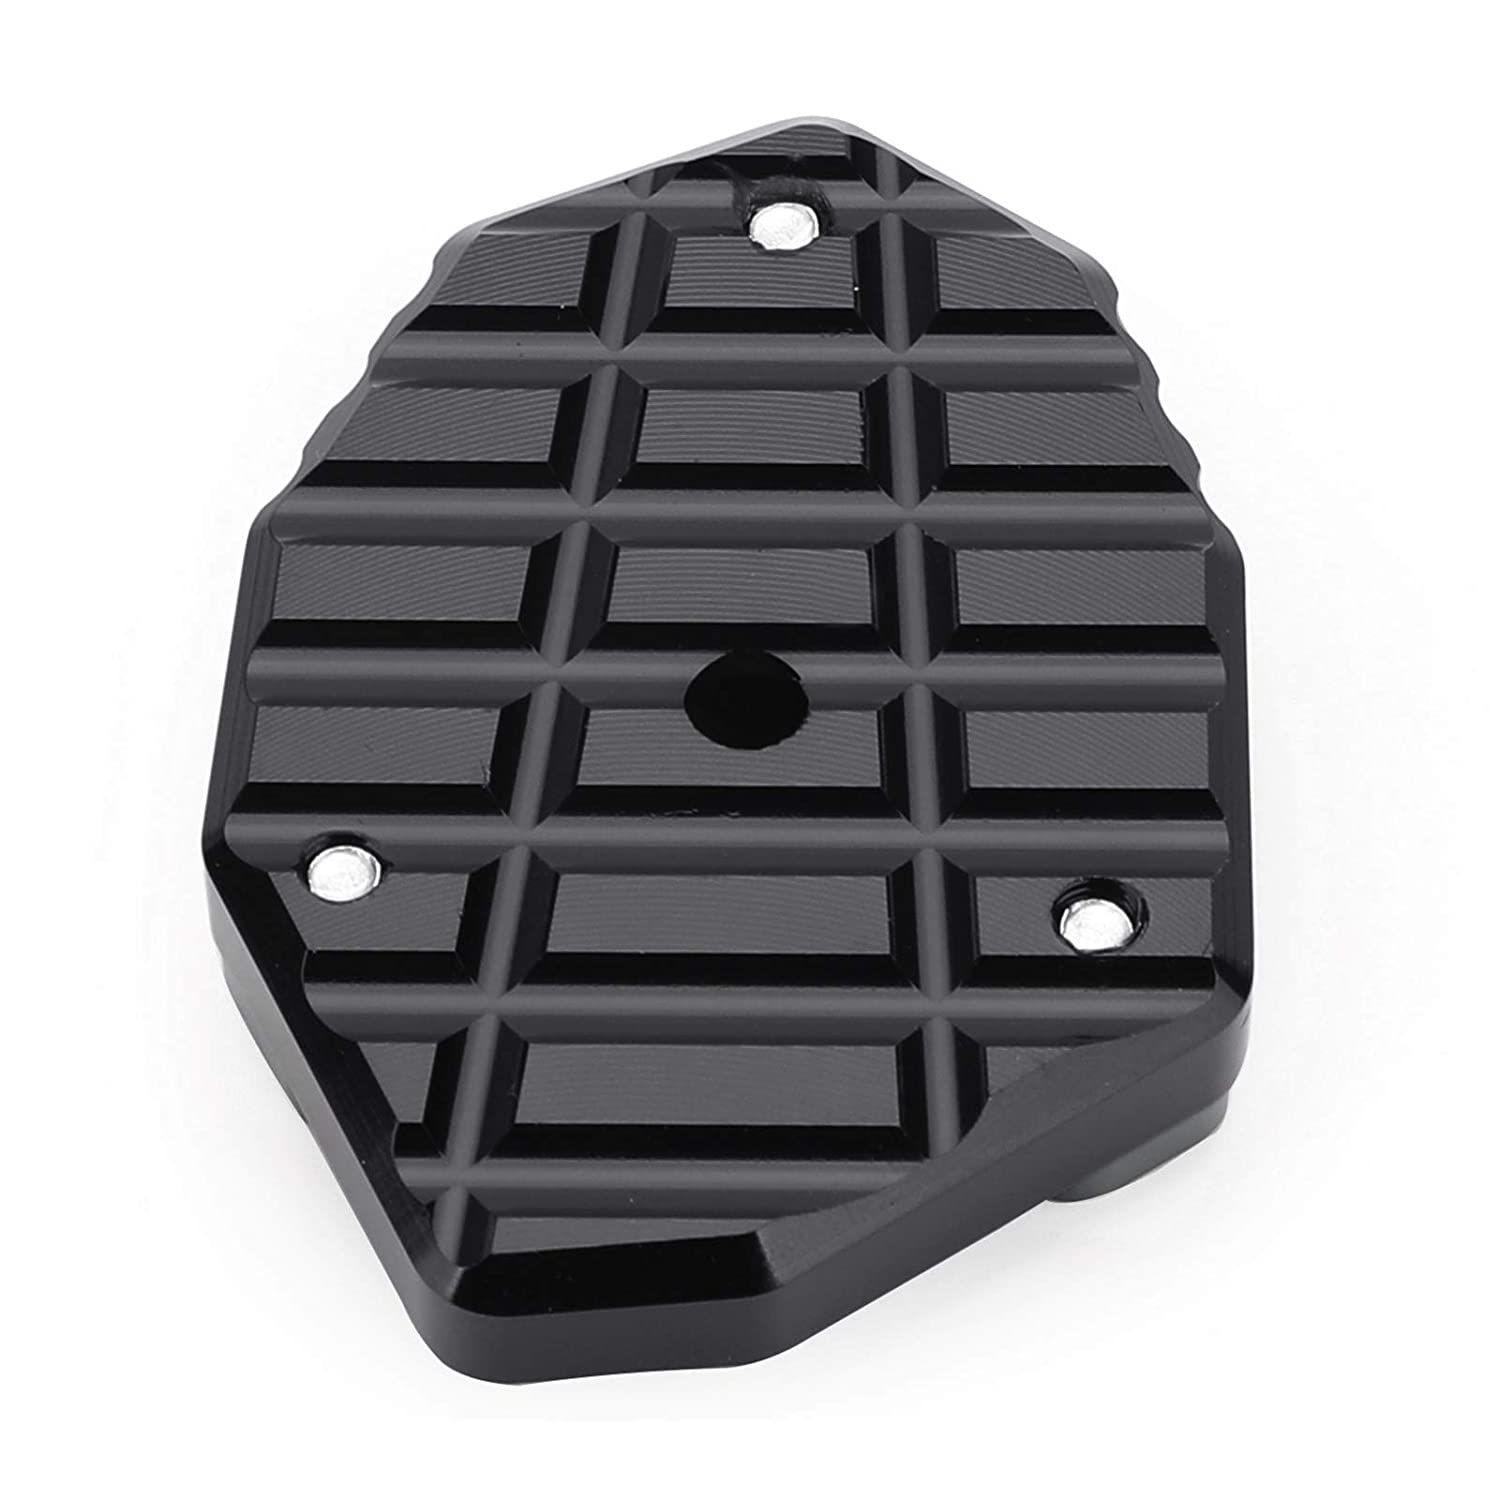 Artudatech Estensione Cavalletto Moto Pad Cavalletto Moto Ingranditore del Cavalletto Pad di Estensione del Supporto Laterale Cavalletto per SUZU-KI DL650 V-STROM 650 12-19